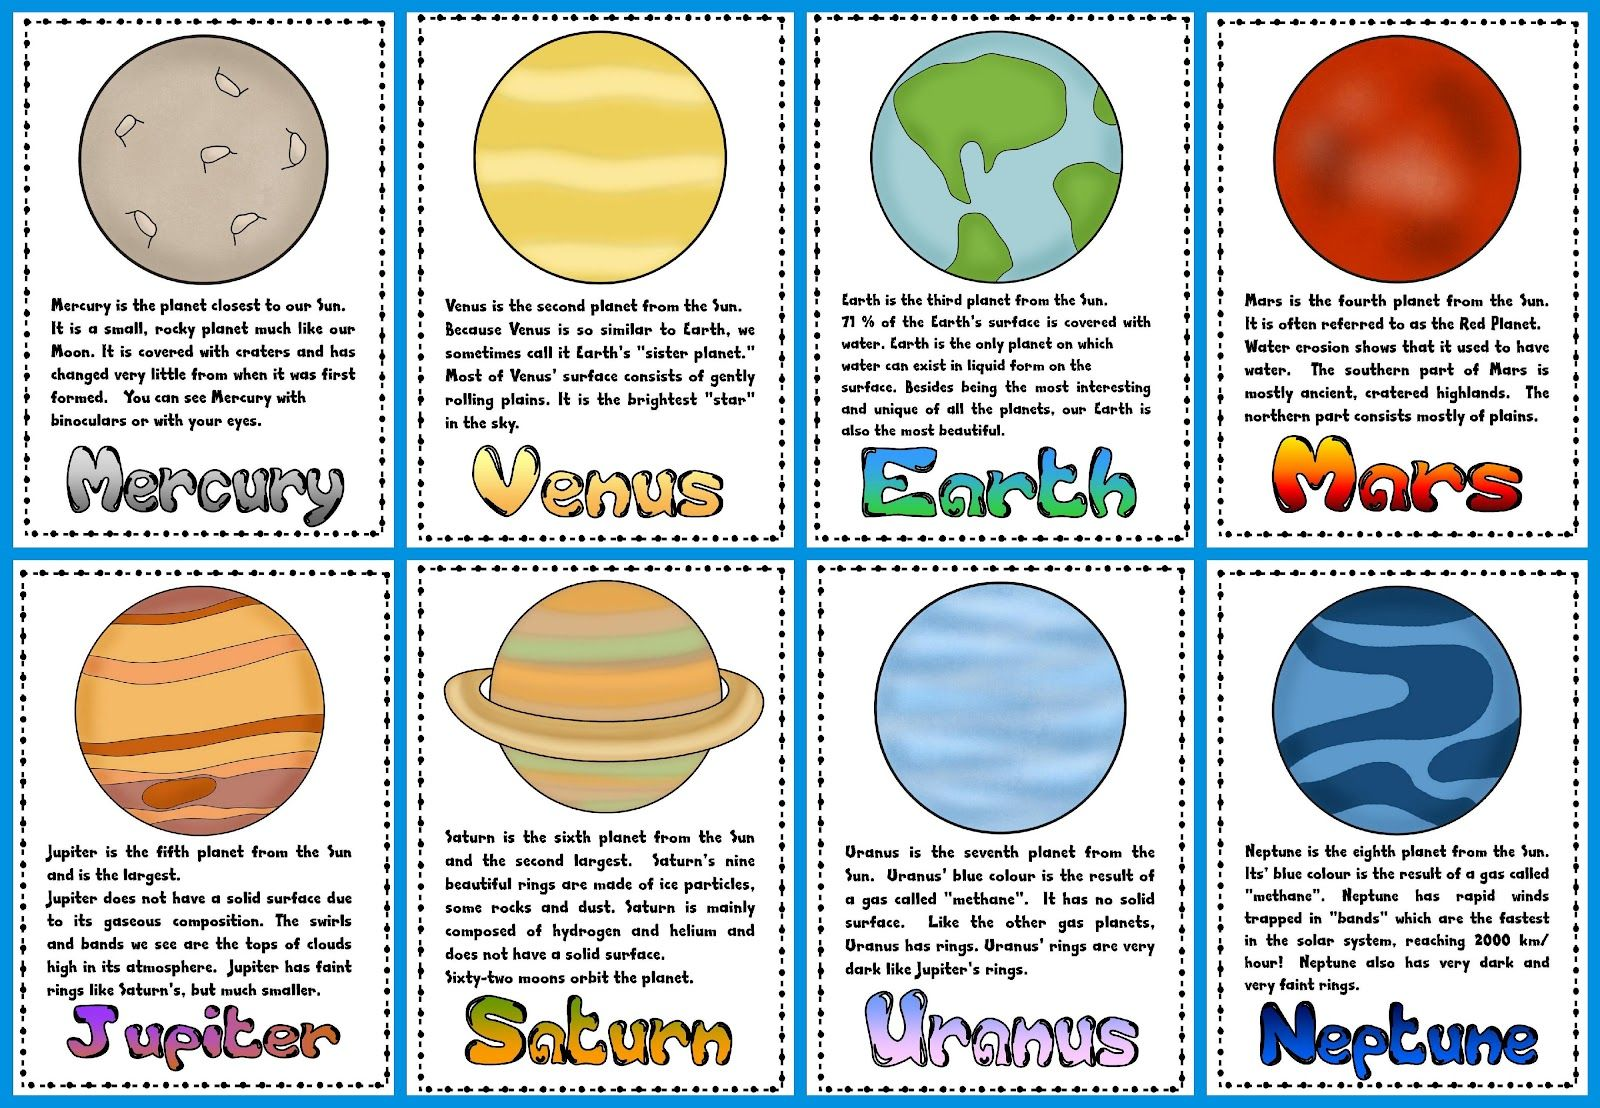 Time off work and The Planets Education Space